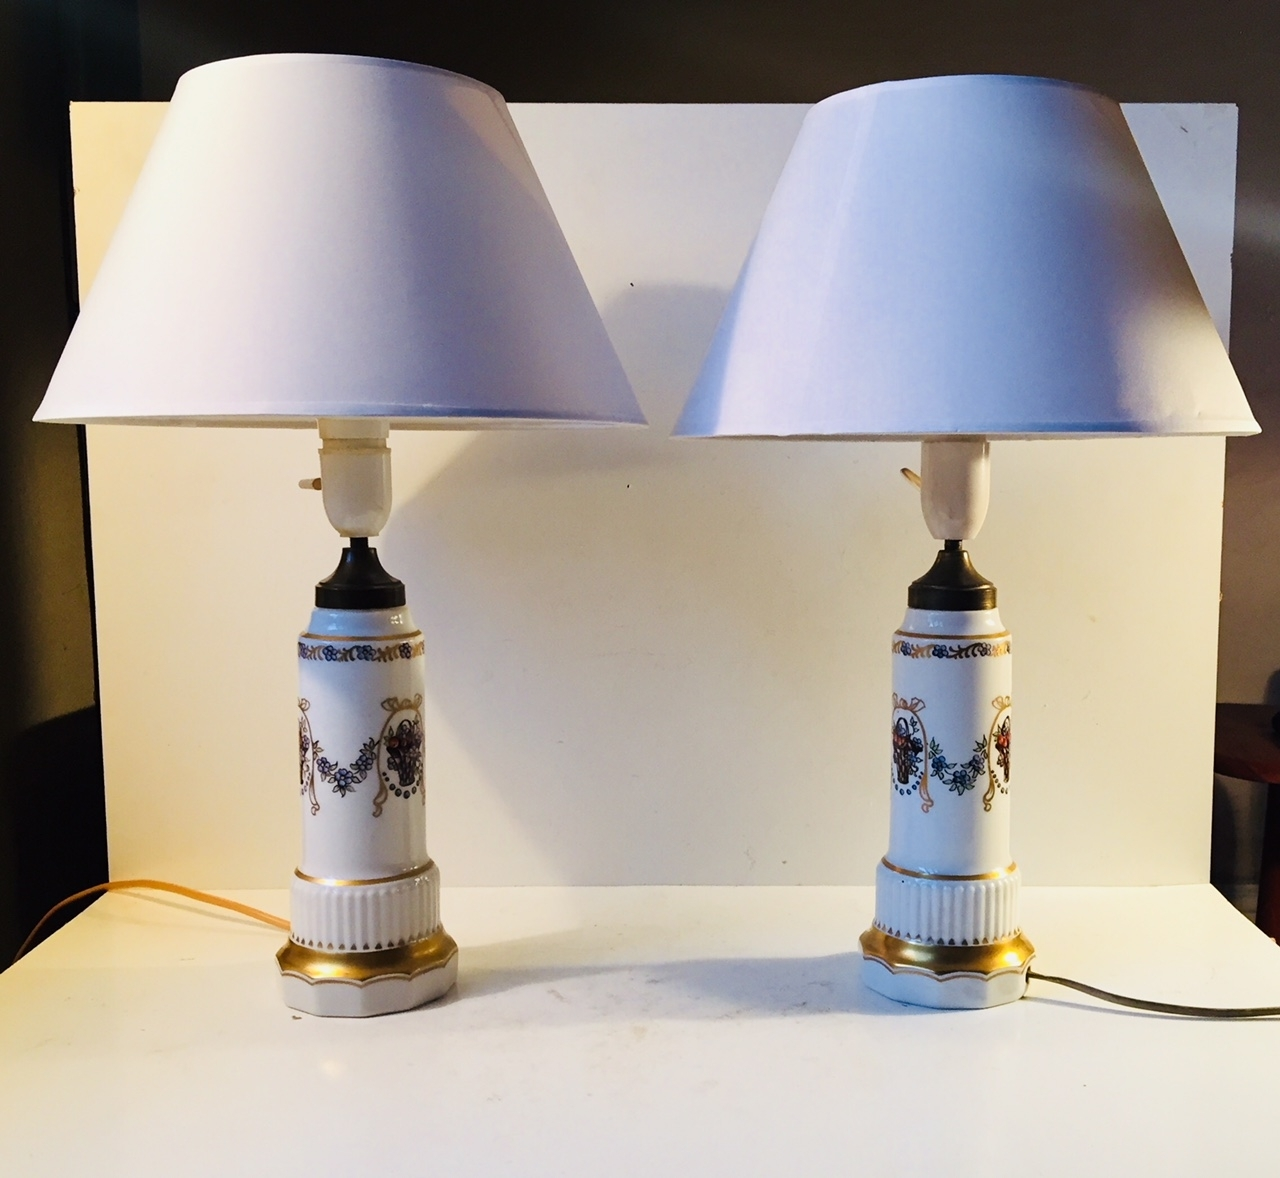 Complete Porcelain Table Lamp Danish Lampsdahl Jensen 1930S Set Throughout Set Of 2 Living Room Table Lamps (View 3 of 15)